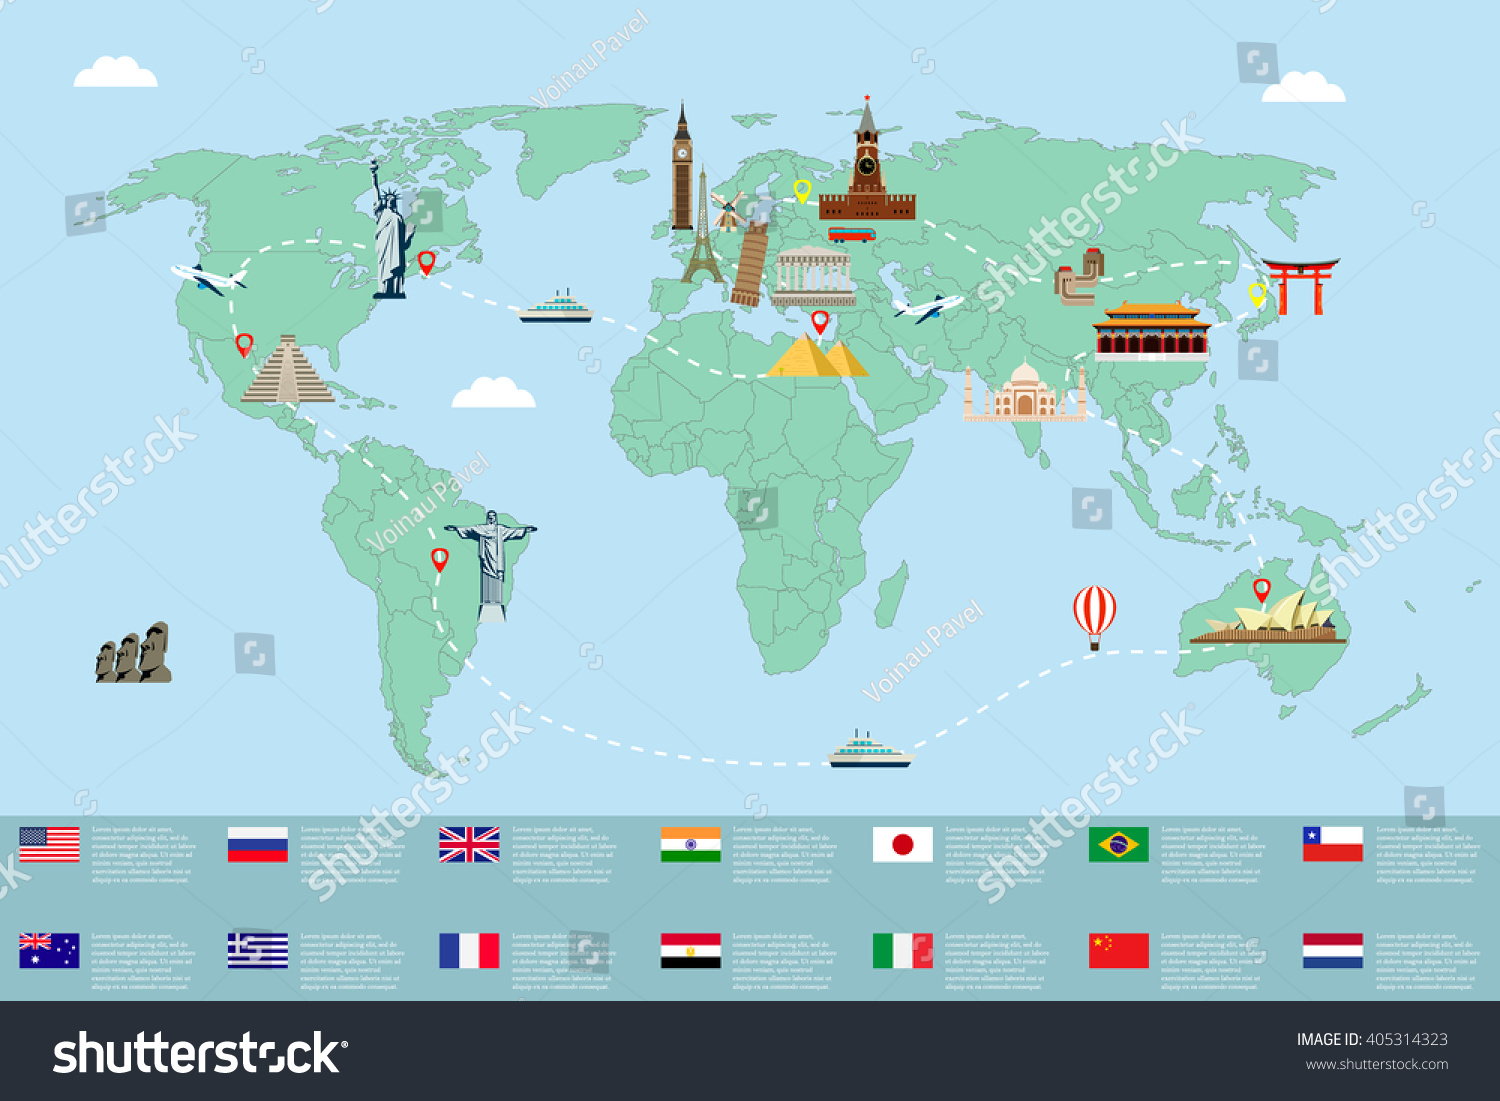 World map famous landmarks travel tourism stock vector for Special landmarks